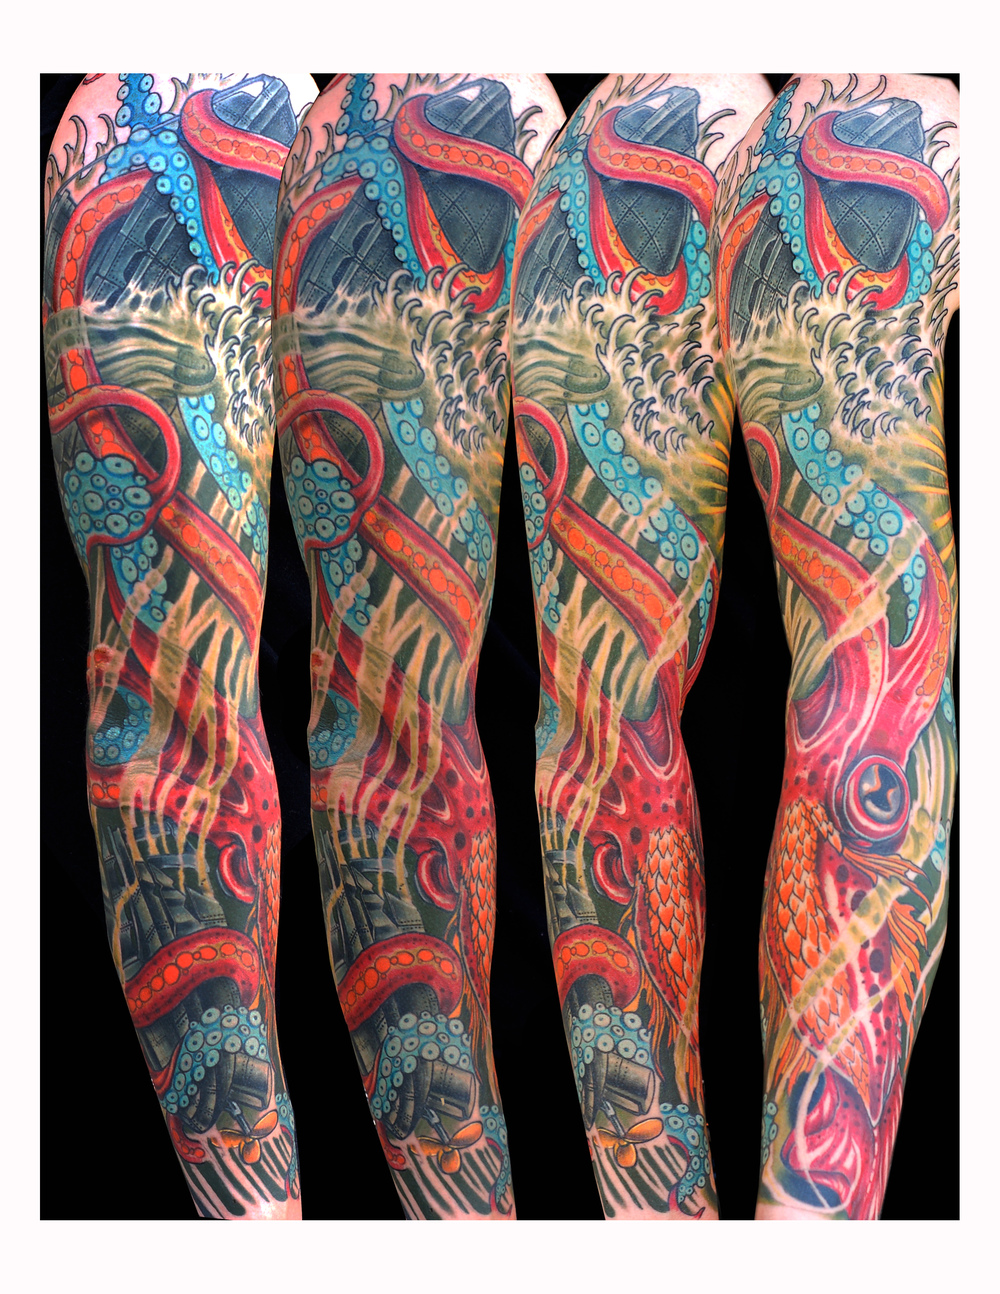 squid_sleeve_newsize.jpg